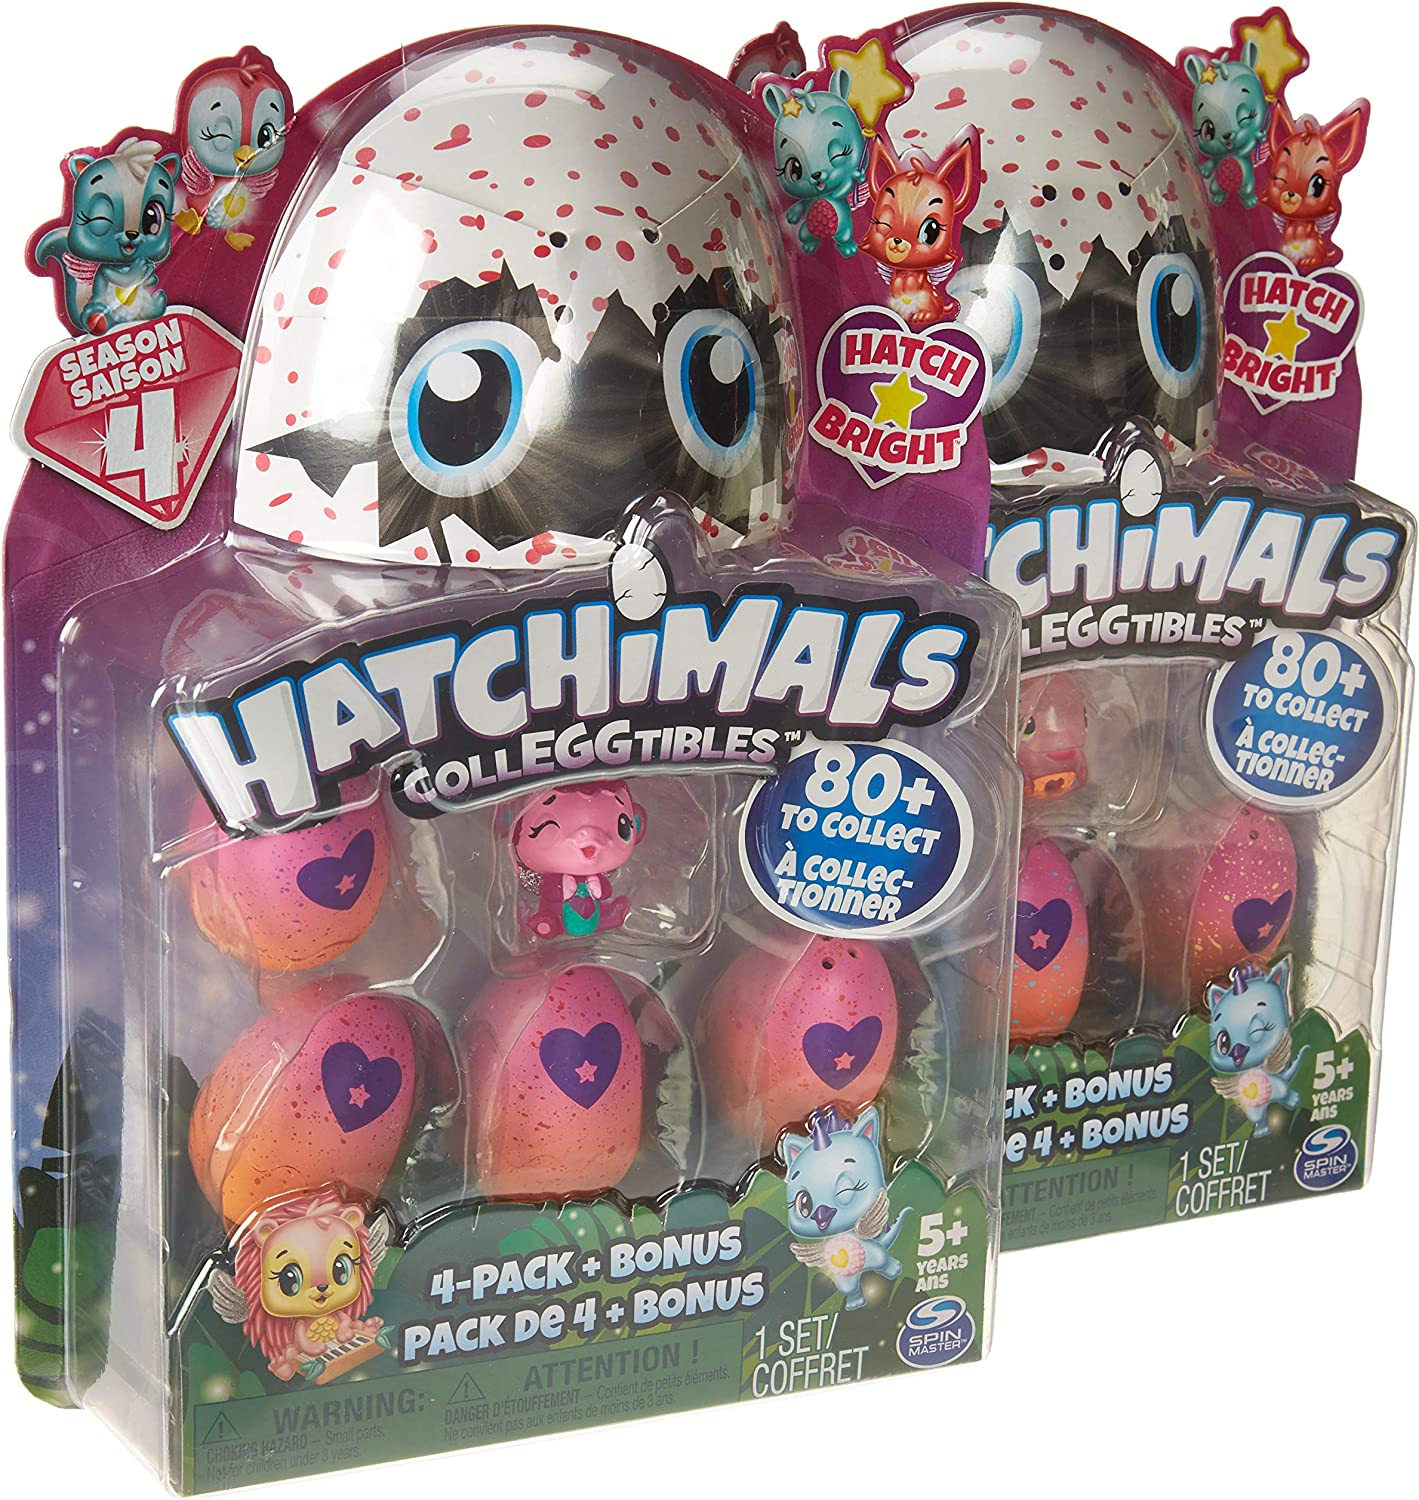 Hatchimals CollEGGtibles Season 4 Kid's Toys (2-Pack) Collectible Playset | Glitter, Metallic, Glow-in-The-Dark- Fuzzy, and Limited Edition Surprises | Girls and Boys